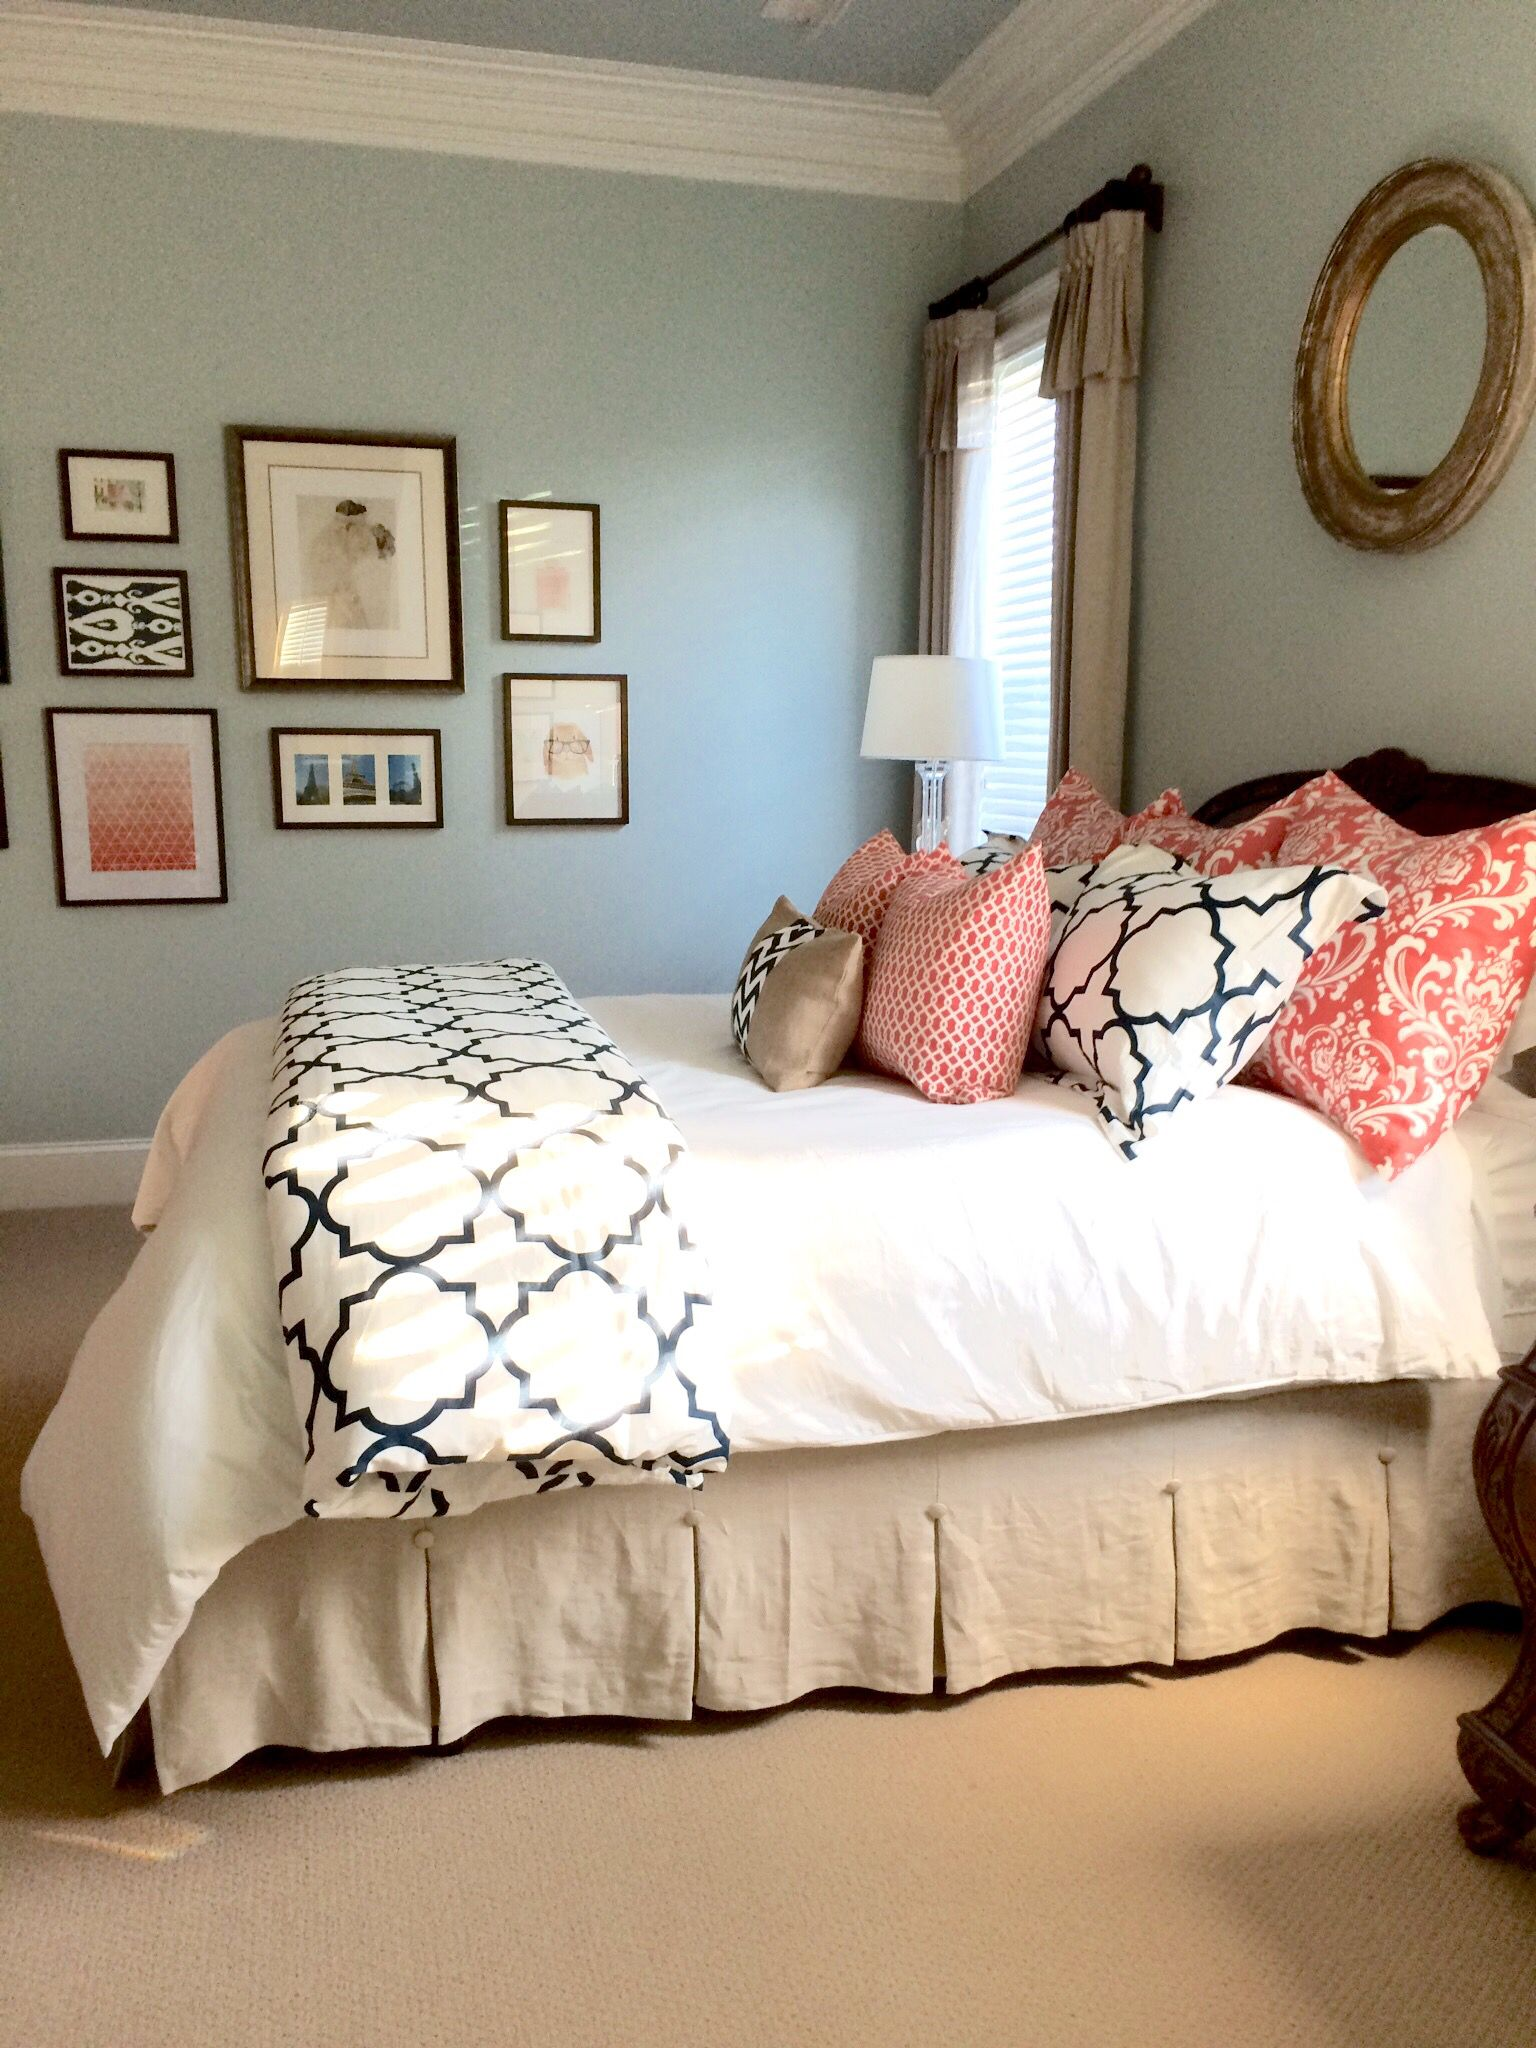 editors picks dream bedrooms bedrooms bed skirts and duvet completed linen navy and coral bedroom color scheme